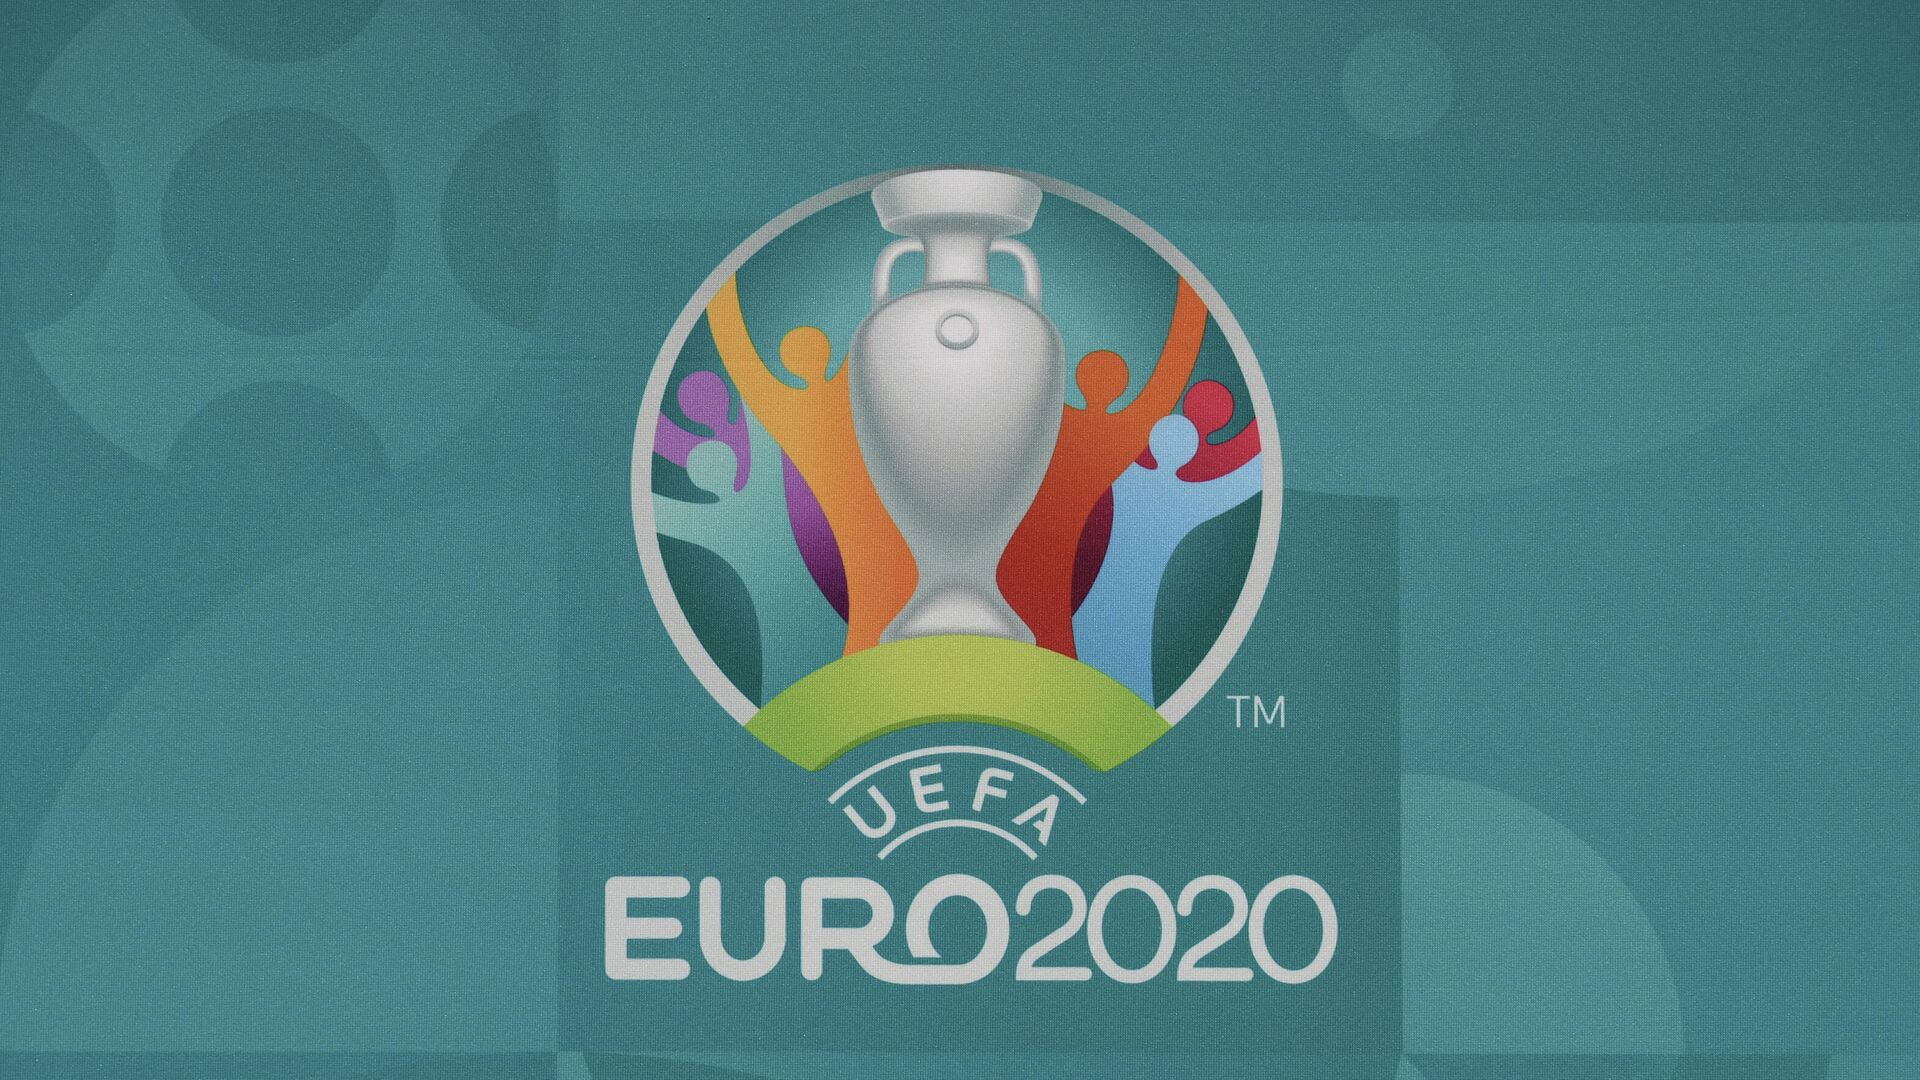 This picture taken on November 30, 2019, in Bucharest, Romania, shows the logo of the European Football Championship 2020 ahead of the UEFA Euro 2020 Final Draw Ceremony. - Bucharest will host the UEFA Euro 2020 draw on November 30, 2019 and host matches in the summer tournament but doubts have arisen on the progress of the construction work. (Photo by Fabrice COFFRINI / AFP) - РИА Новости, 1920, 02.03.2021